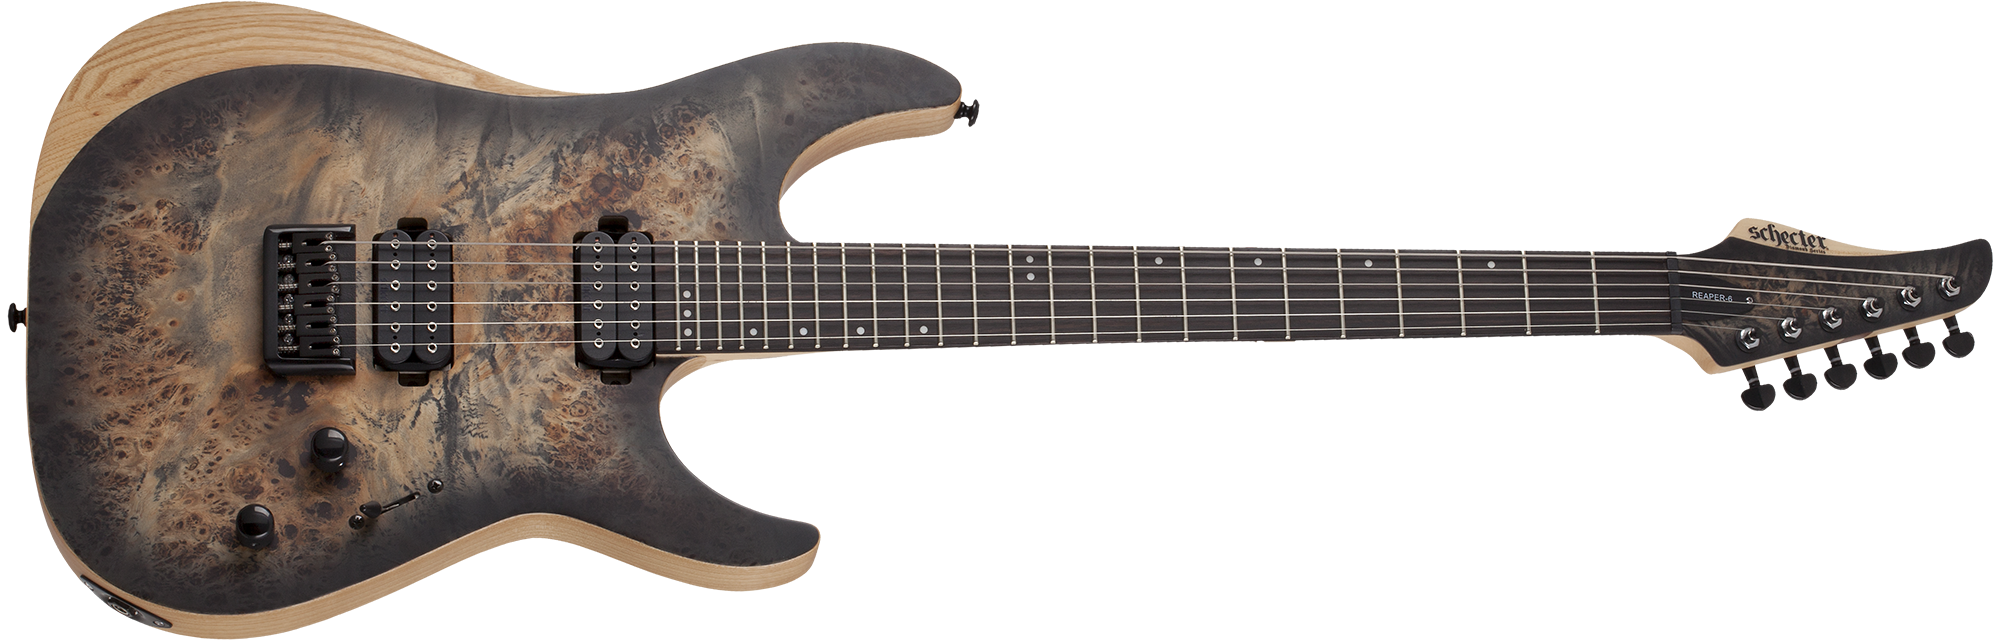 Reaper-6 Satin Charcoal Burst (SCB) SKU #1500